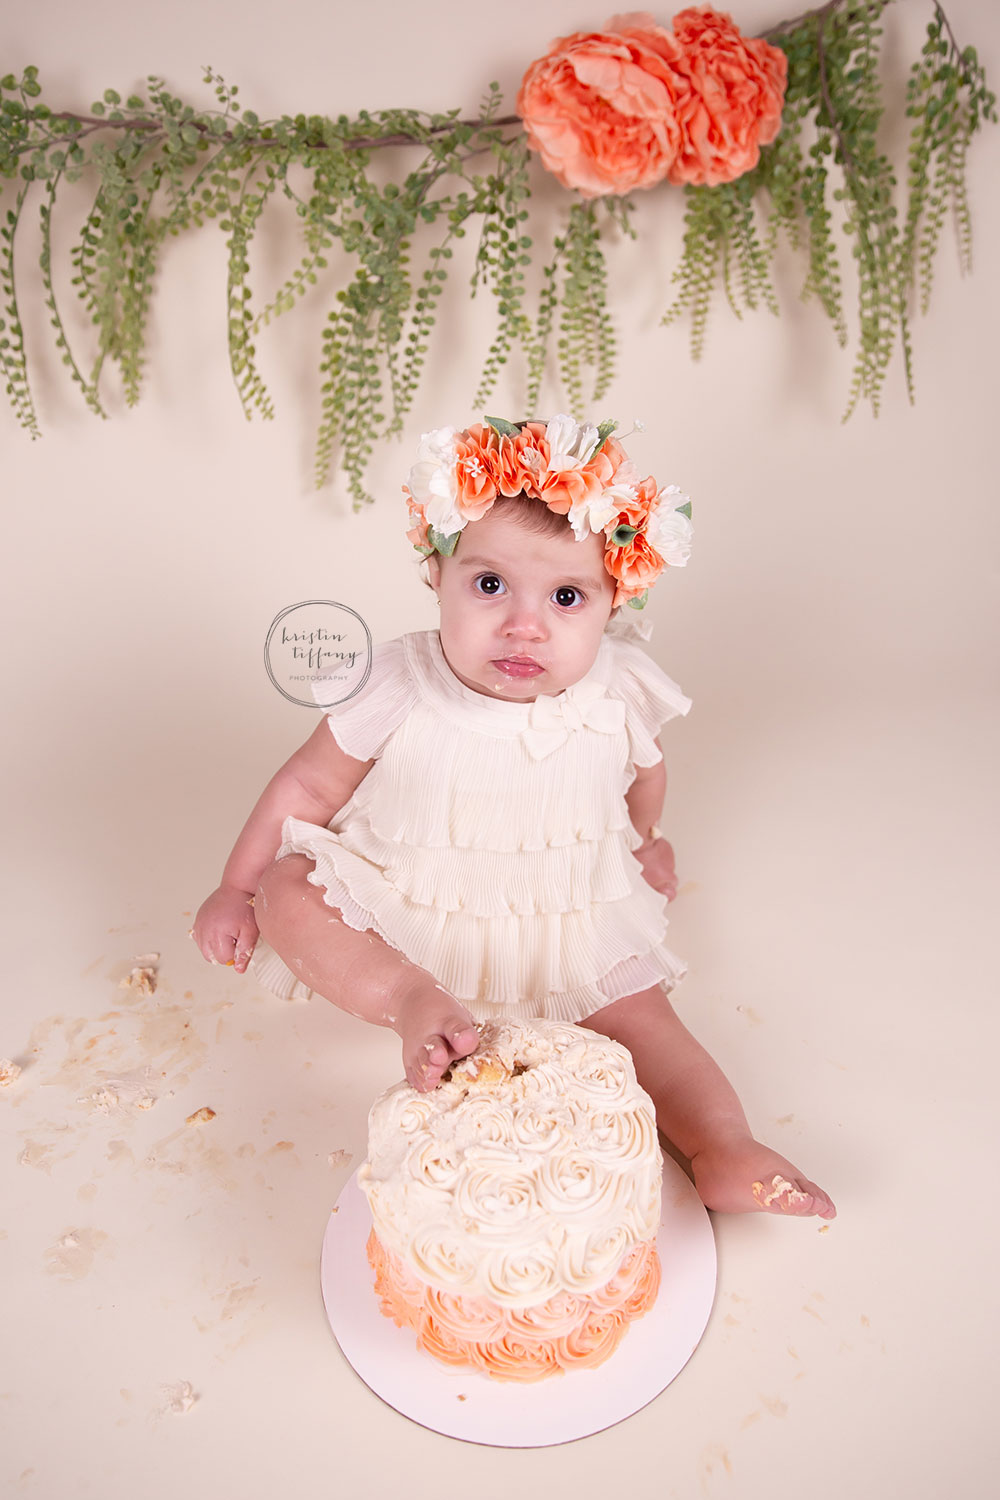 a photo of a baby girl putting her foot in her birthday cake